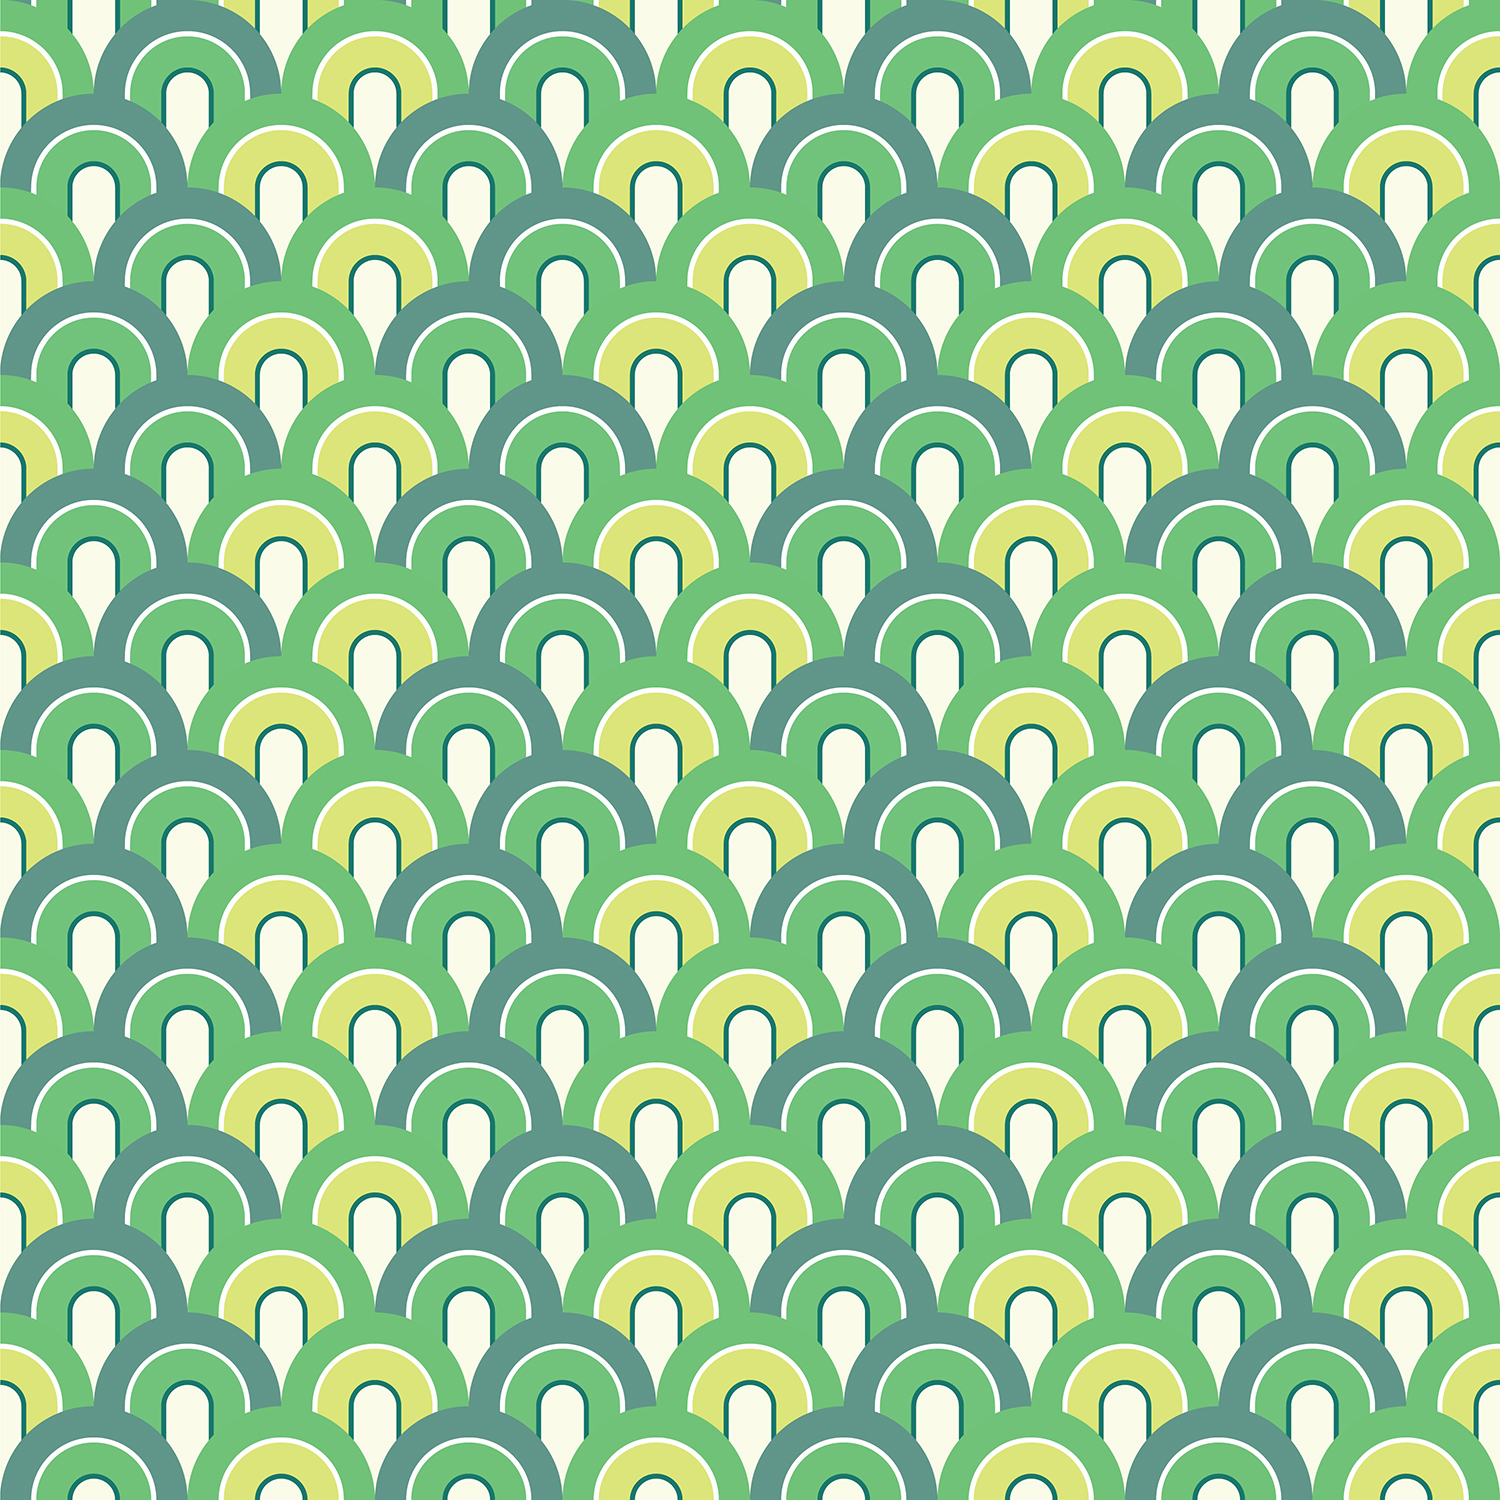 Seamless Patterns example image 4